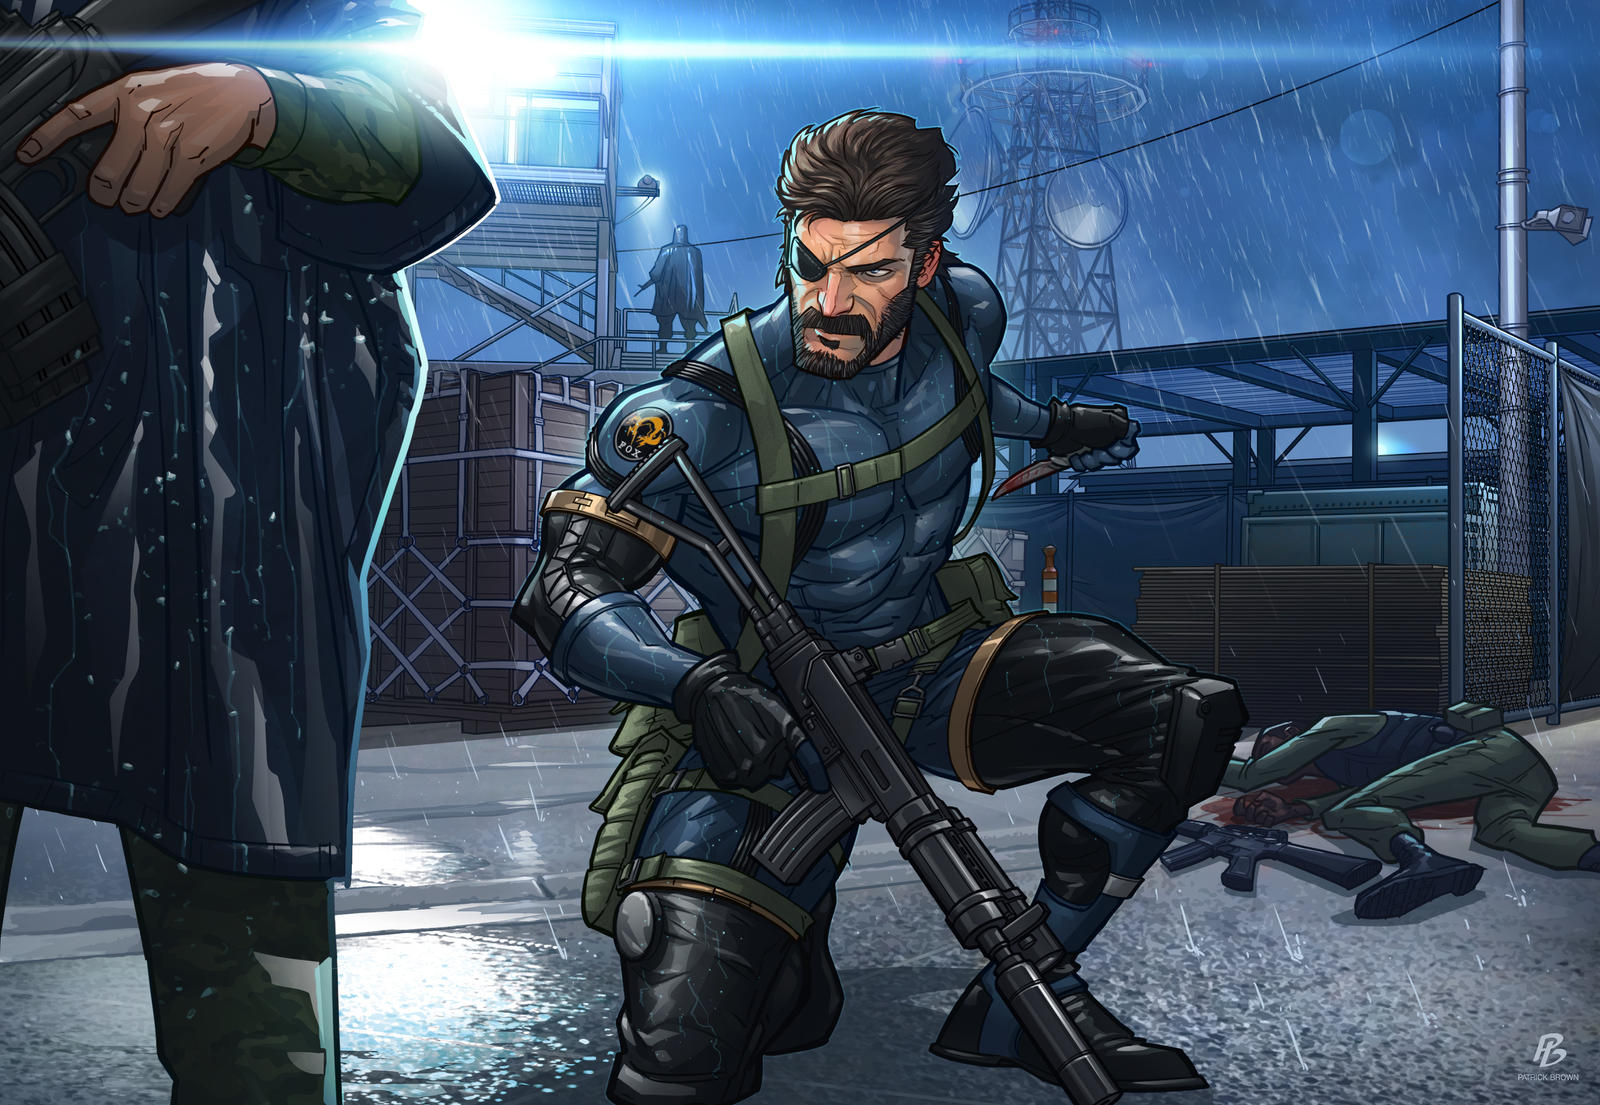 Metal Gear Solid V: Ground Zeroes by PatrickBrown